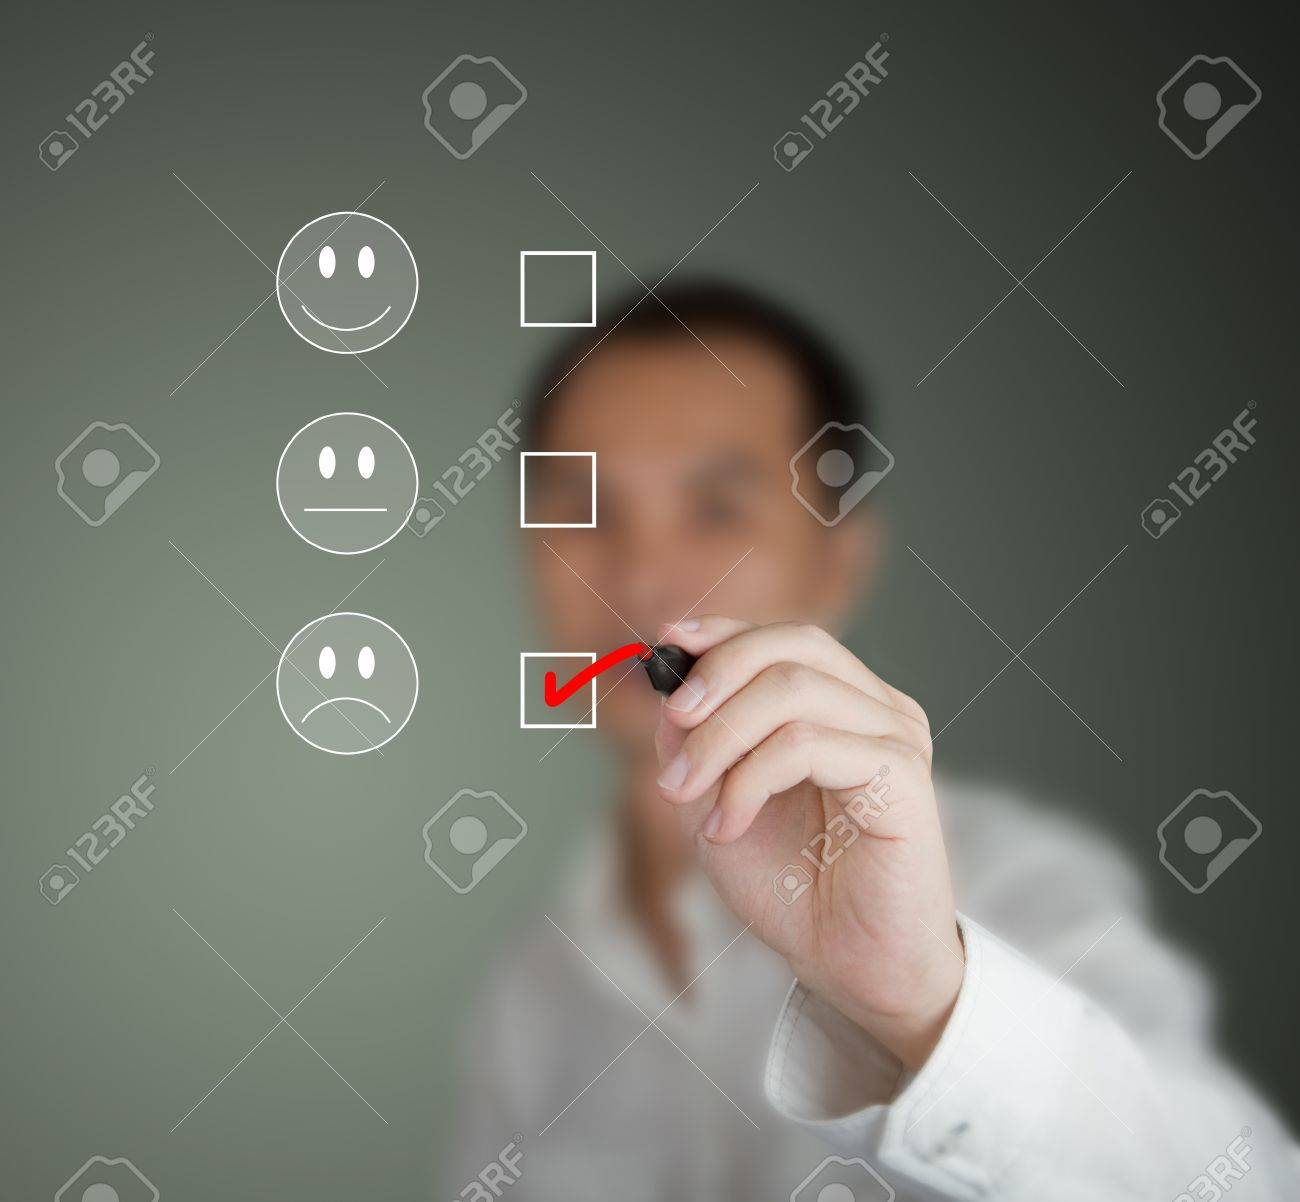 business man marking at unhappy mood on customer satisfaction survey form Stock Photo - 13225084